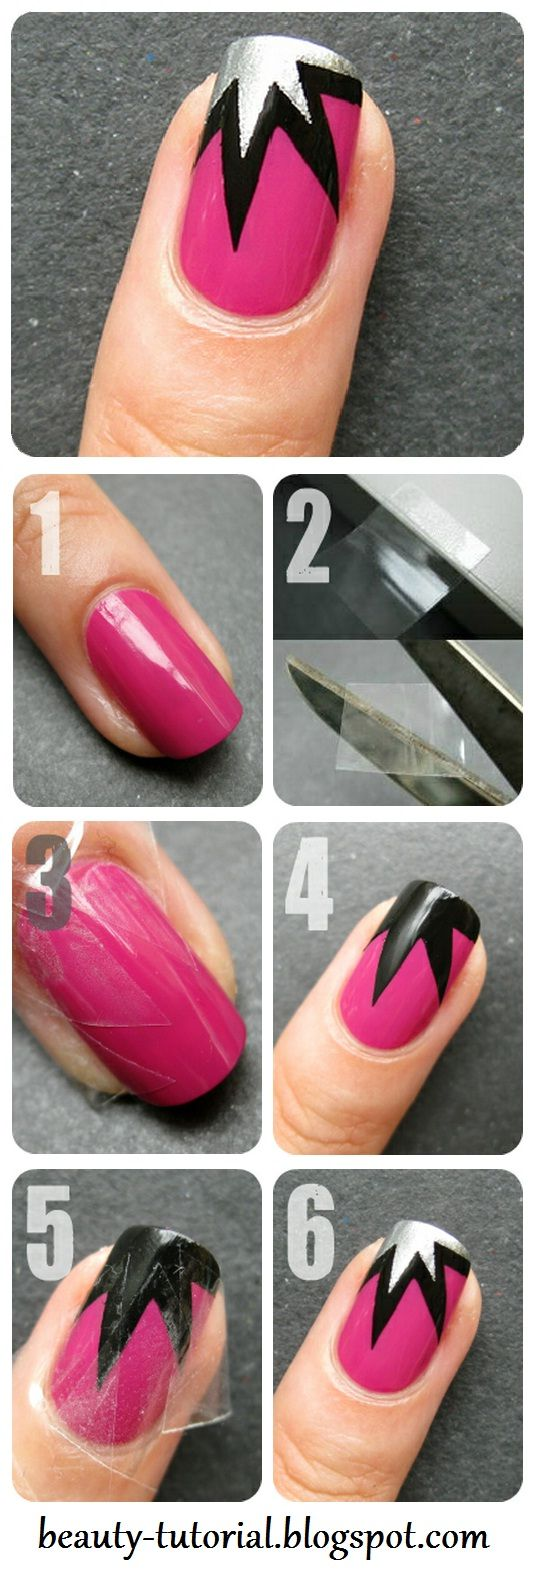 43 best images about nails on pinterest nail art galaxy nails and explosion nail art design tape manicure tutorial solutioingenieria Image collections